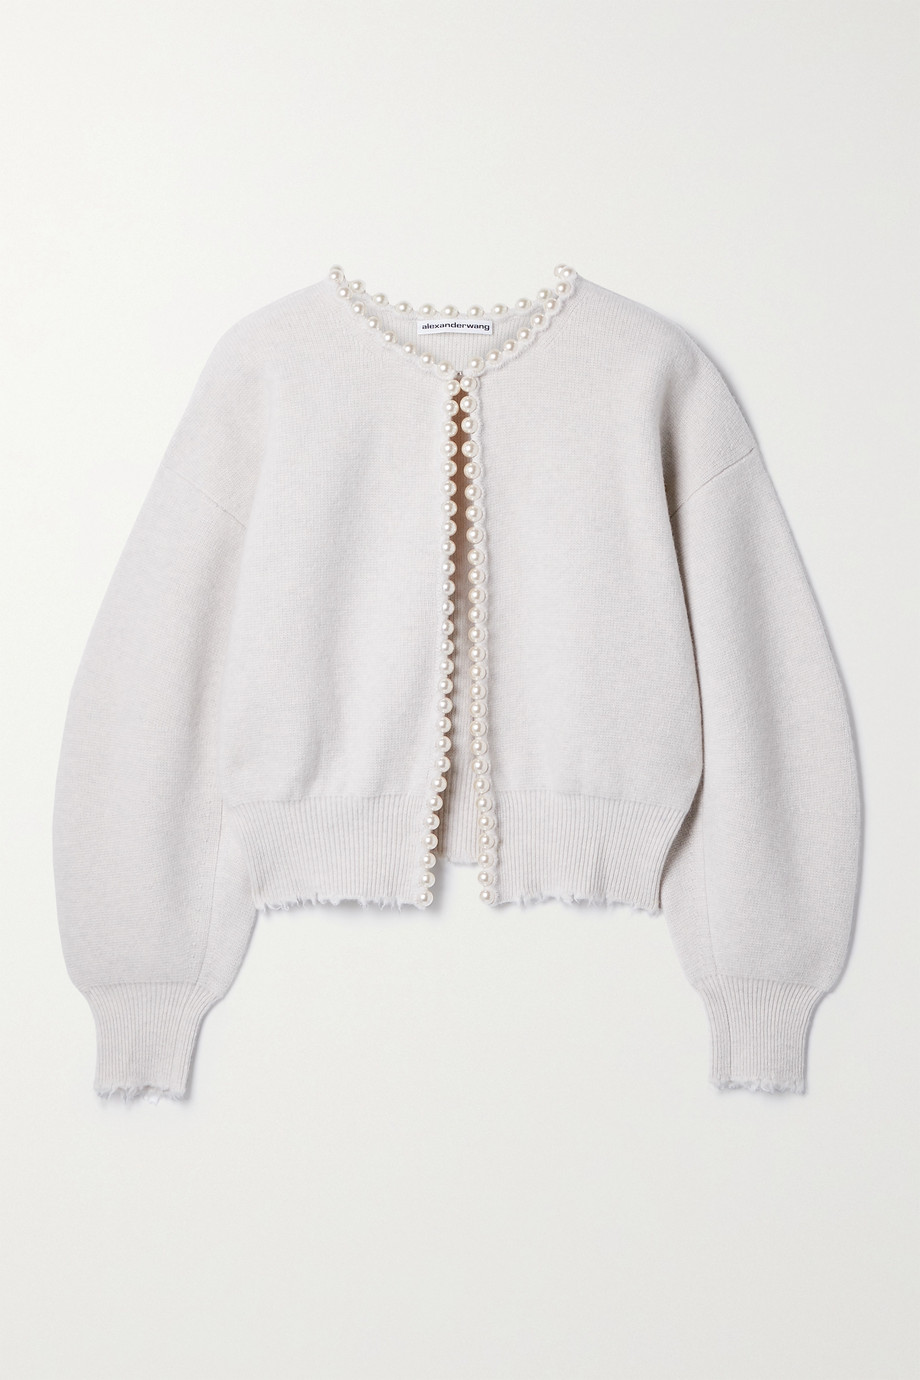 Alexander Wang Faux pearl-embellished distressed wool-blend cardigan